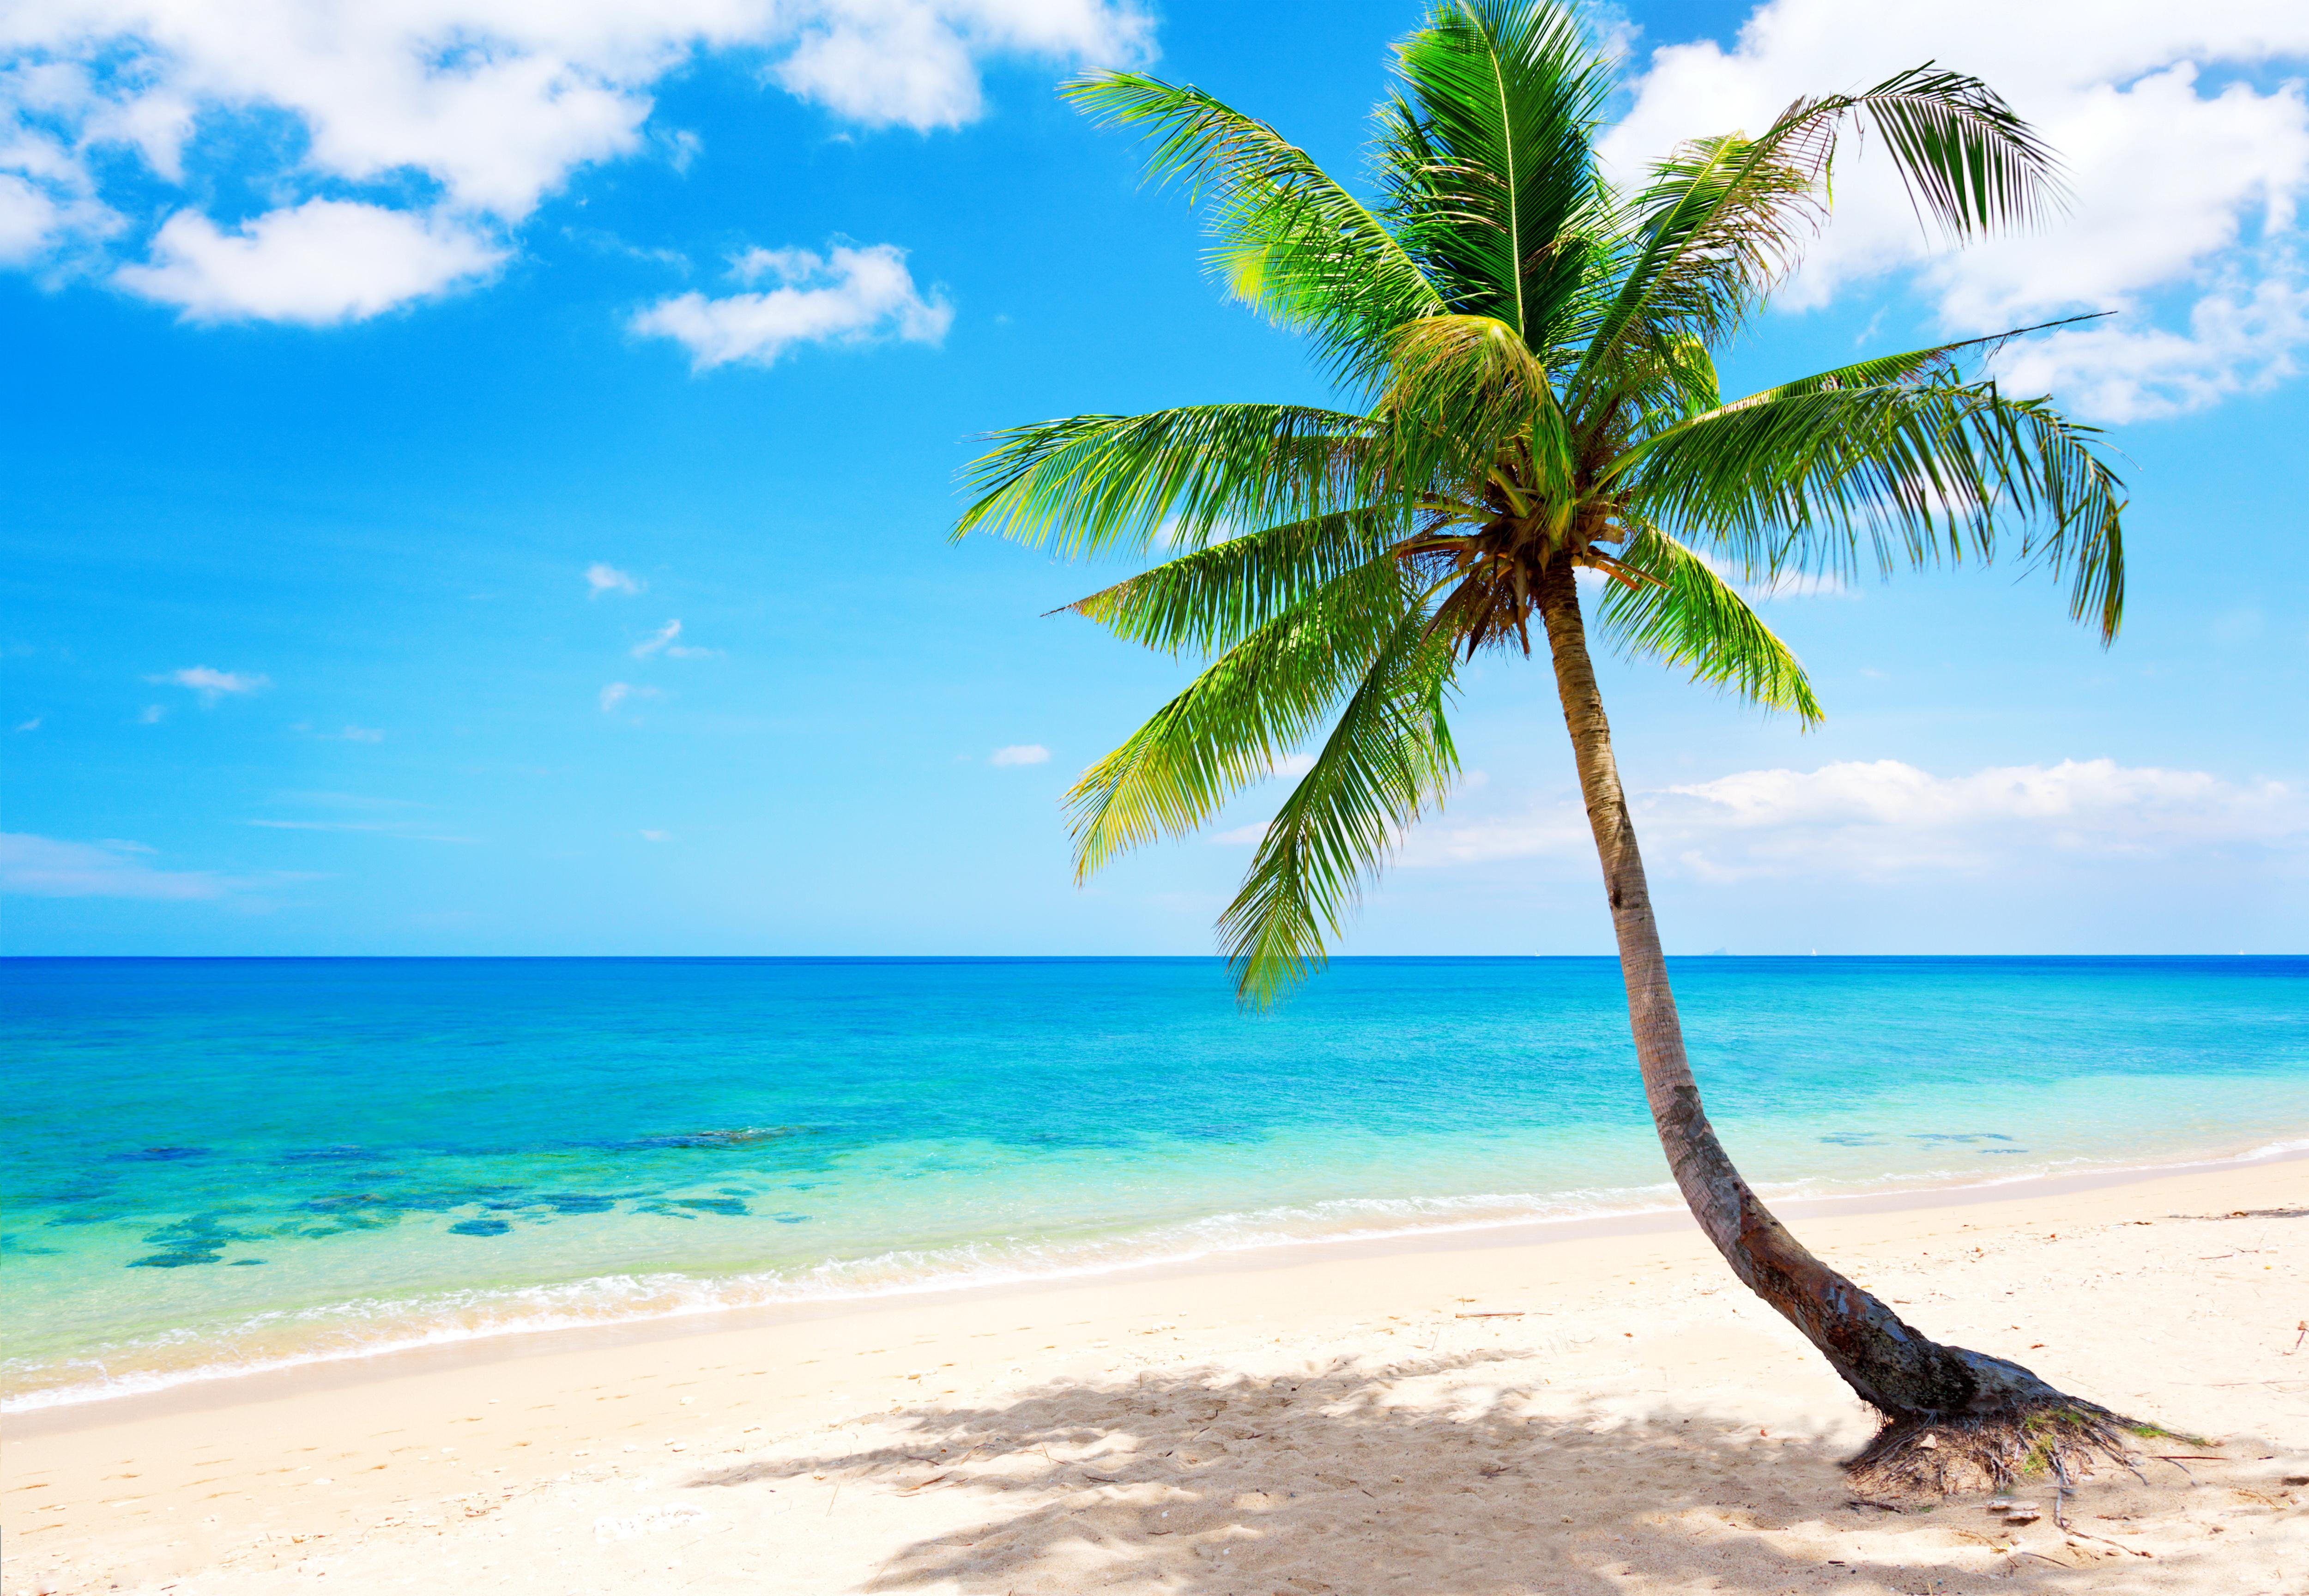 Tropical Paradise Beach Coast Sea Blue Emerald Ocean: Tropical Beach Wallpapers, Pictures, Images